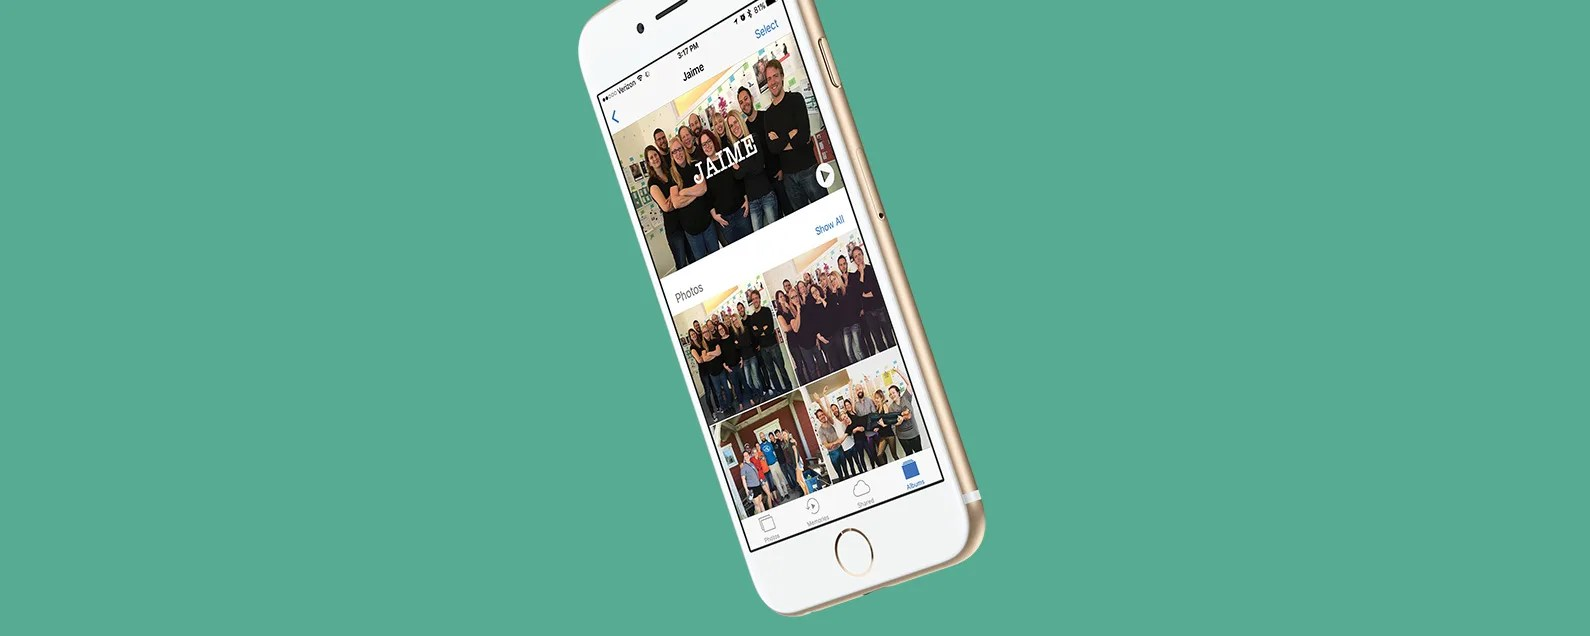 Fullsize Of How To Select All Photos On Iphone